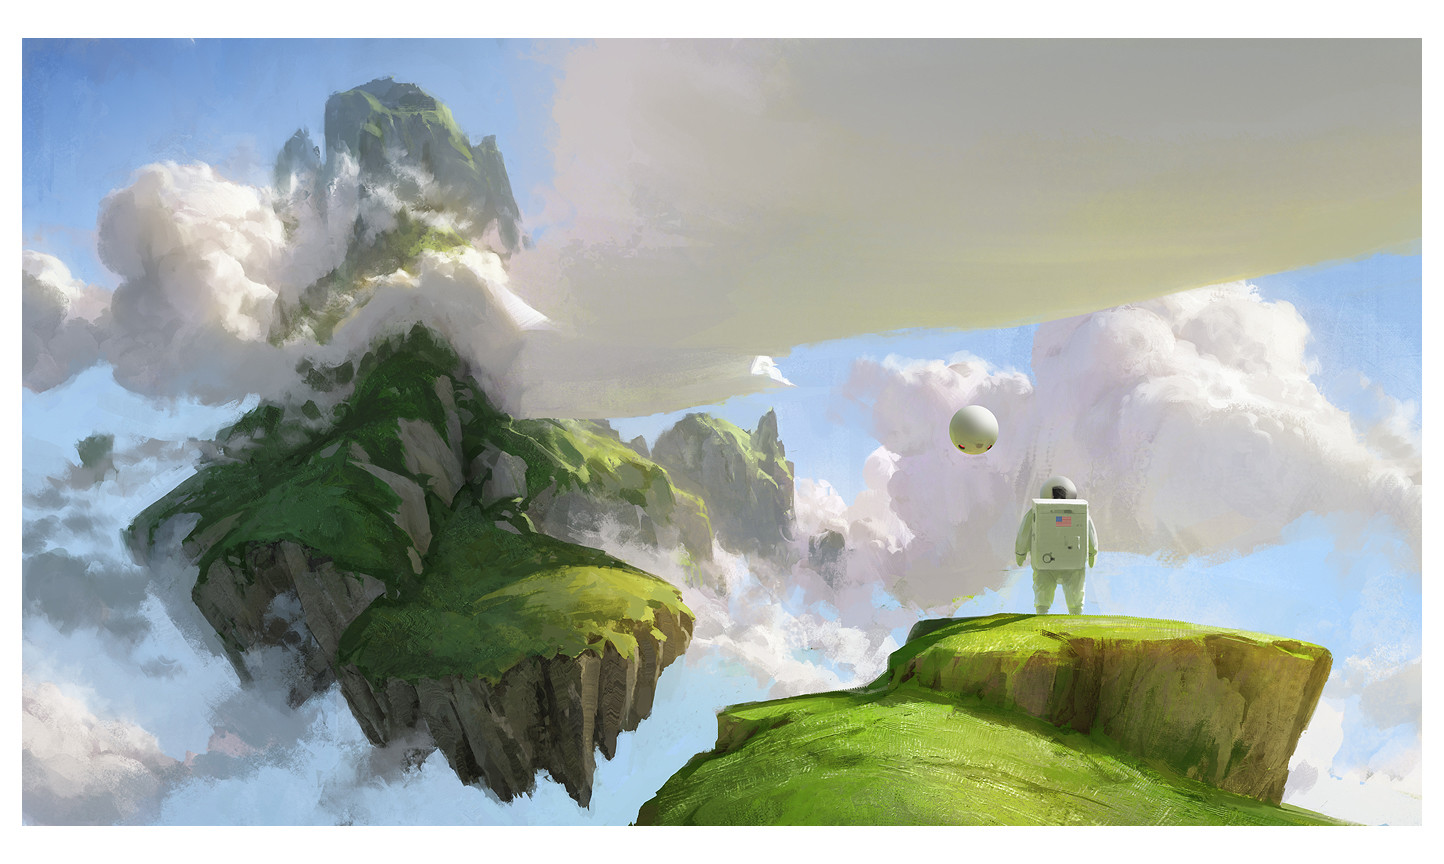 Quentin mabille mossy planet v4b